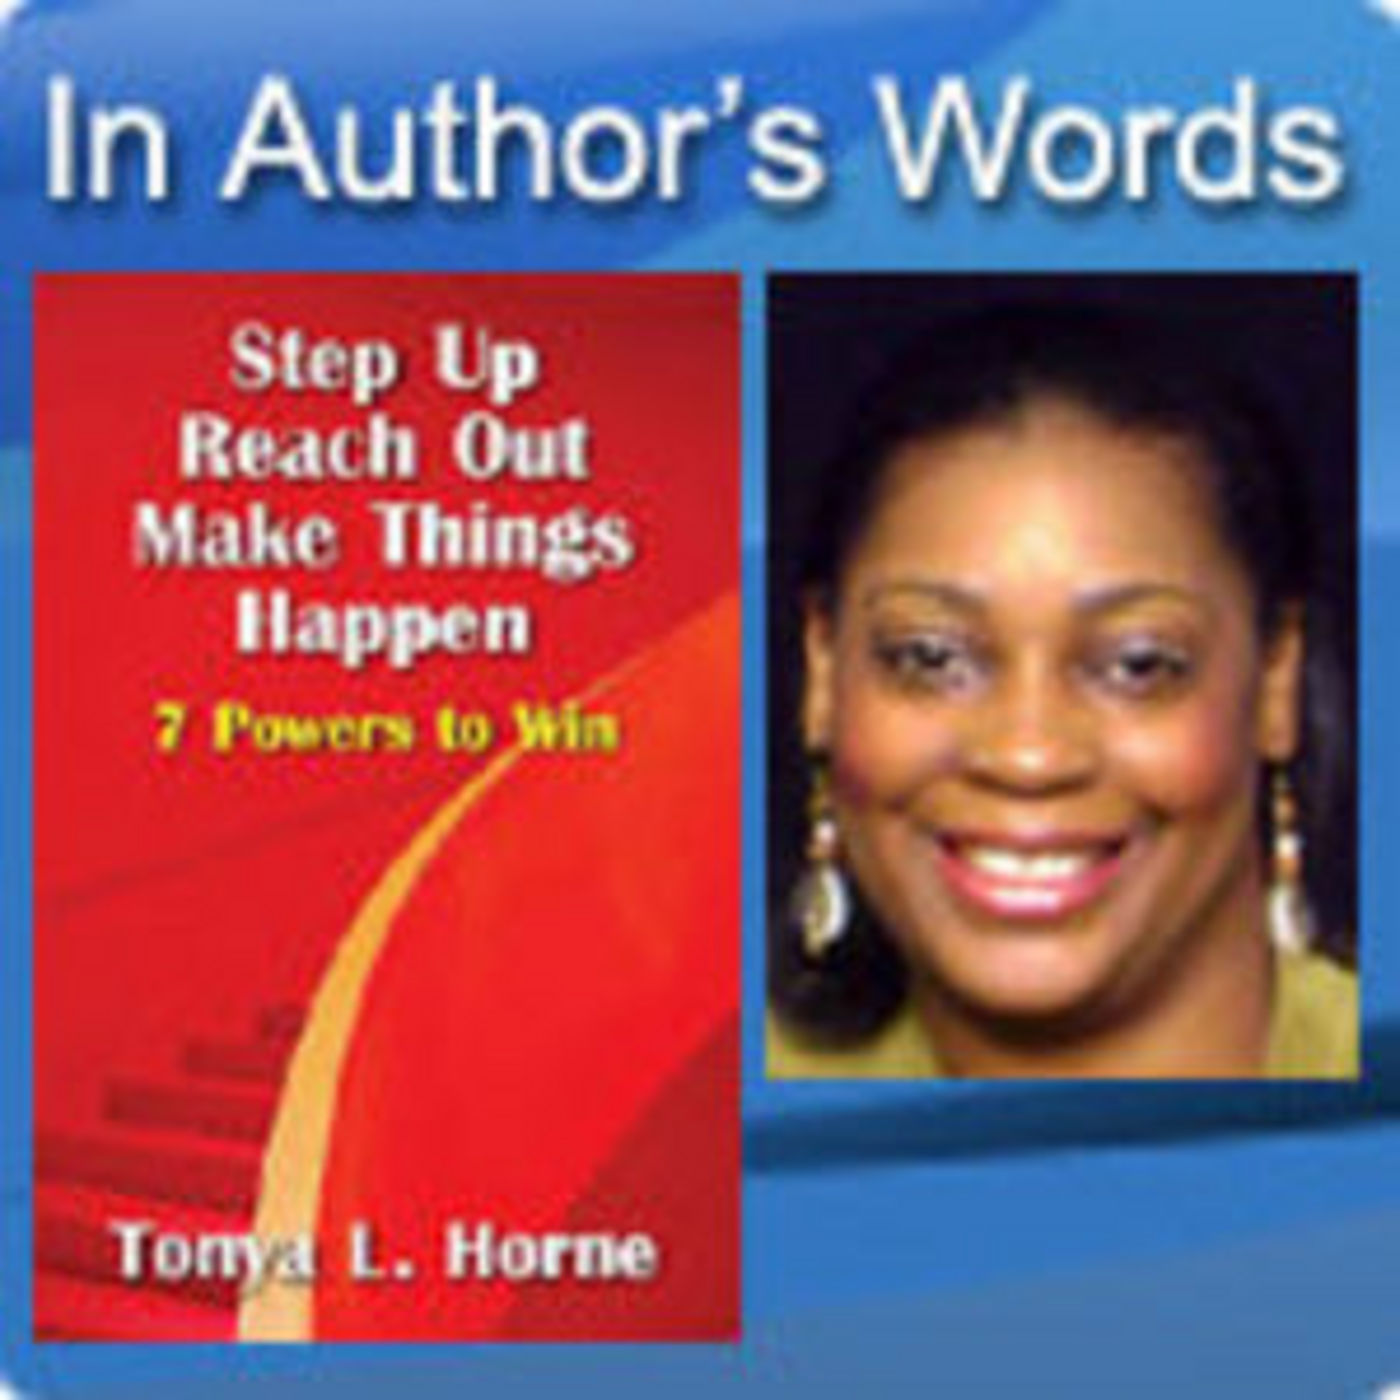 Step Up Reach Out Make Things Happen by Tonya L. Horne